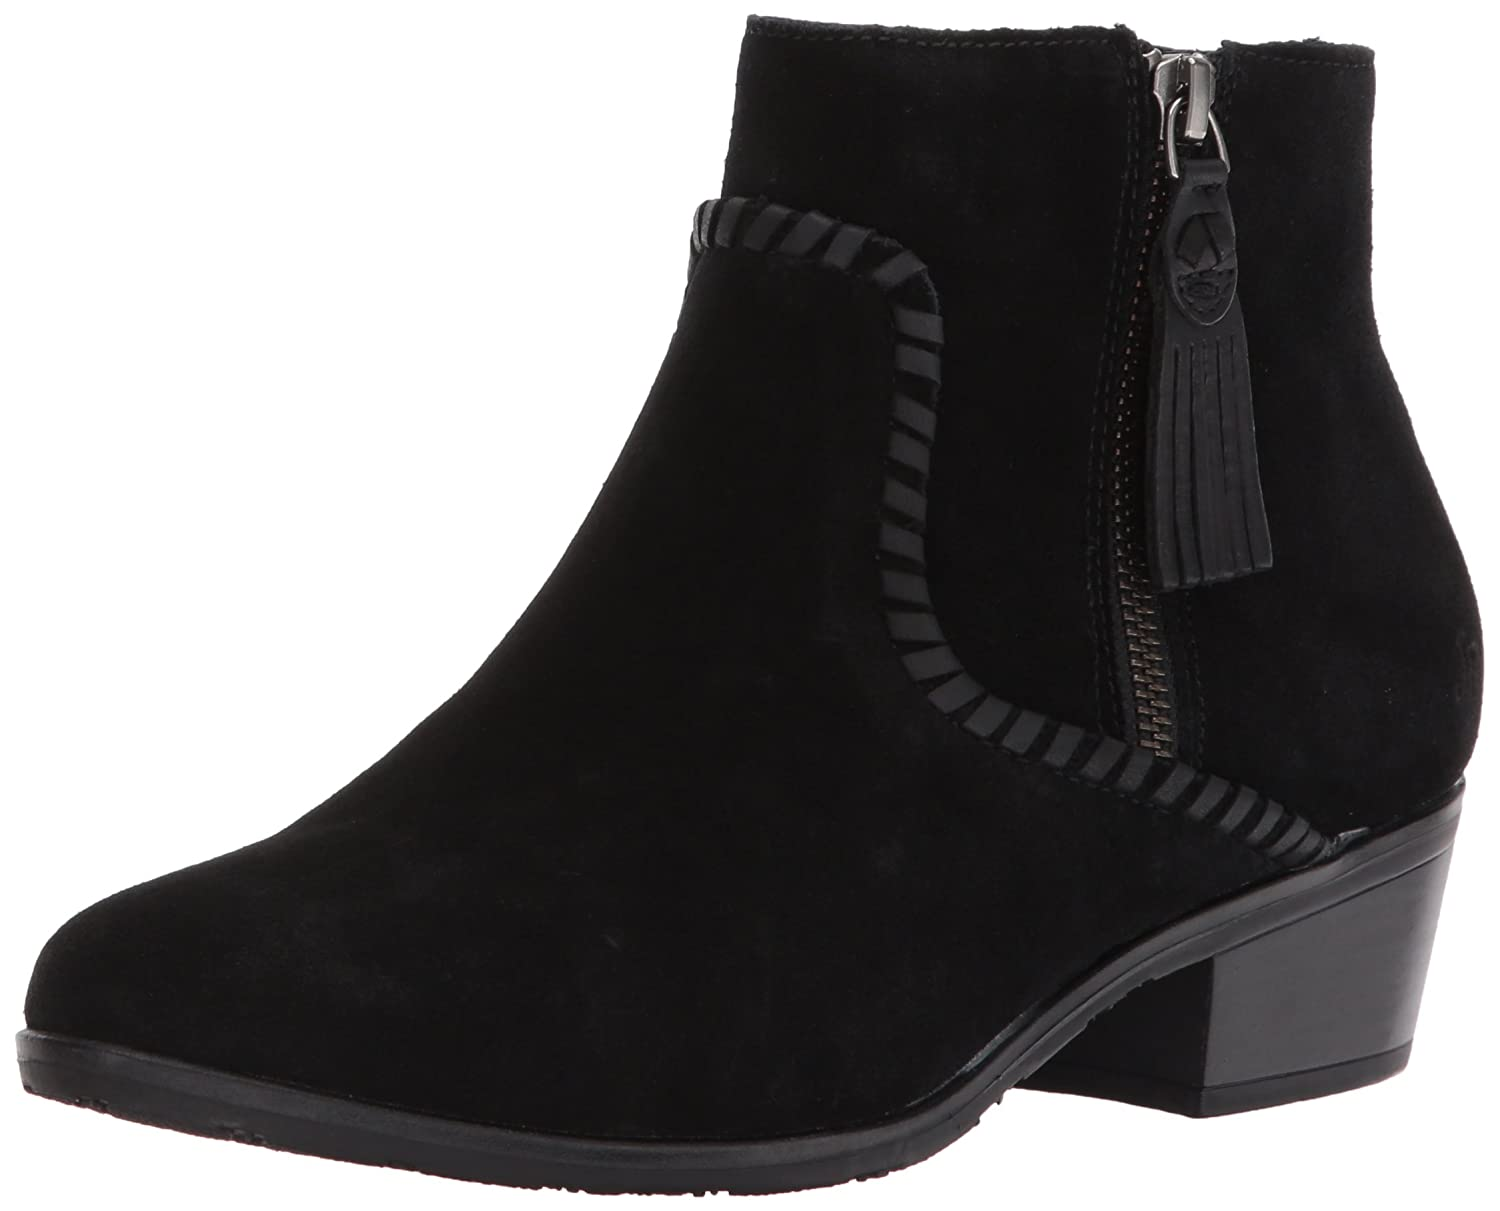 Jack Rogers Women's Dylan Waterproof Ankle Boot B06WWGWG56 7 M US|Black Suede